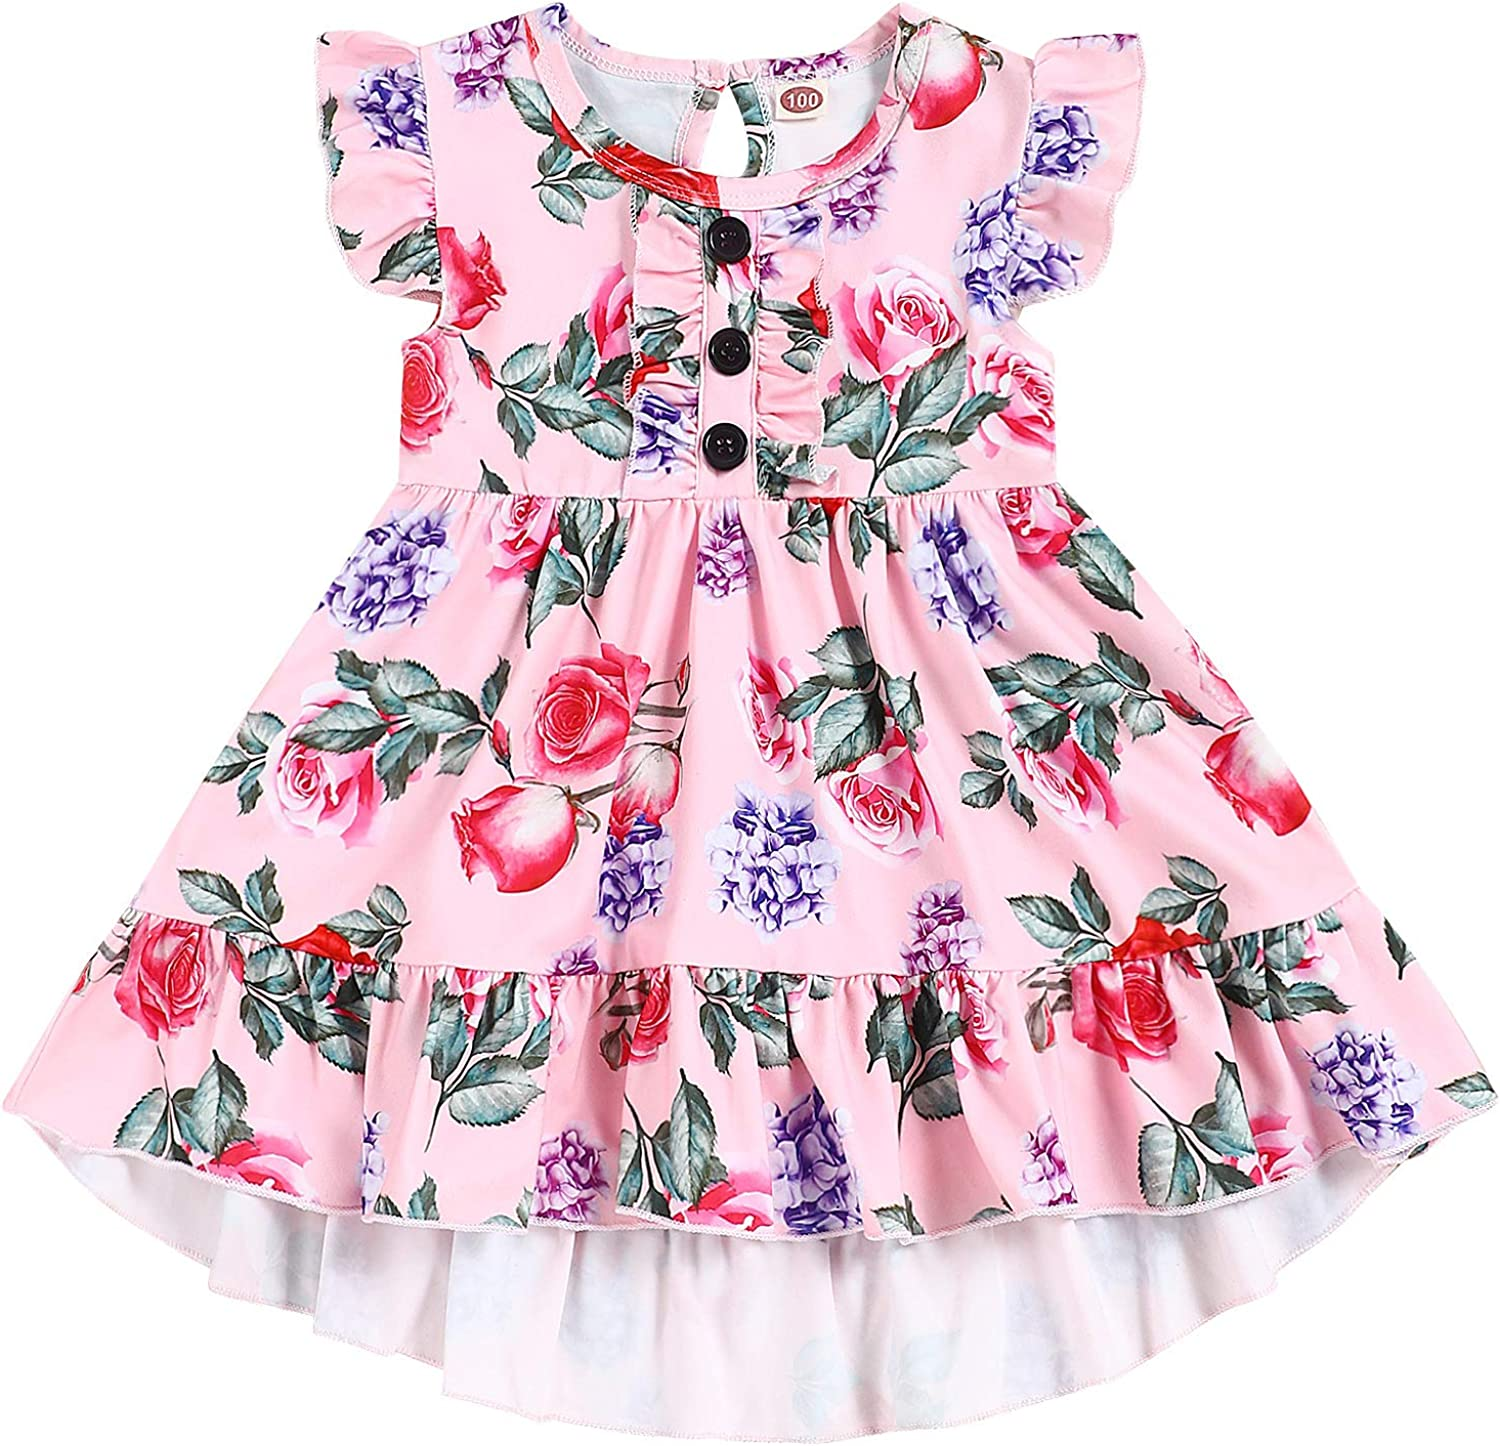 RCPATERN Toddler Kids Baby Boston Mall Girl Dresses Floral L Bargain sale Outfits Clothes